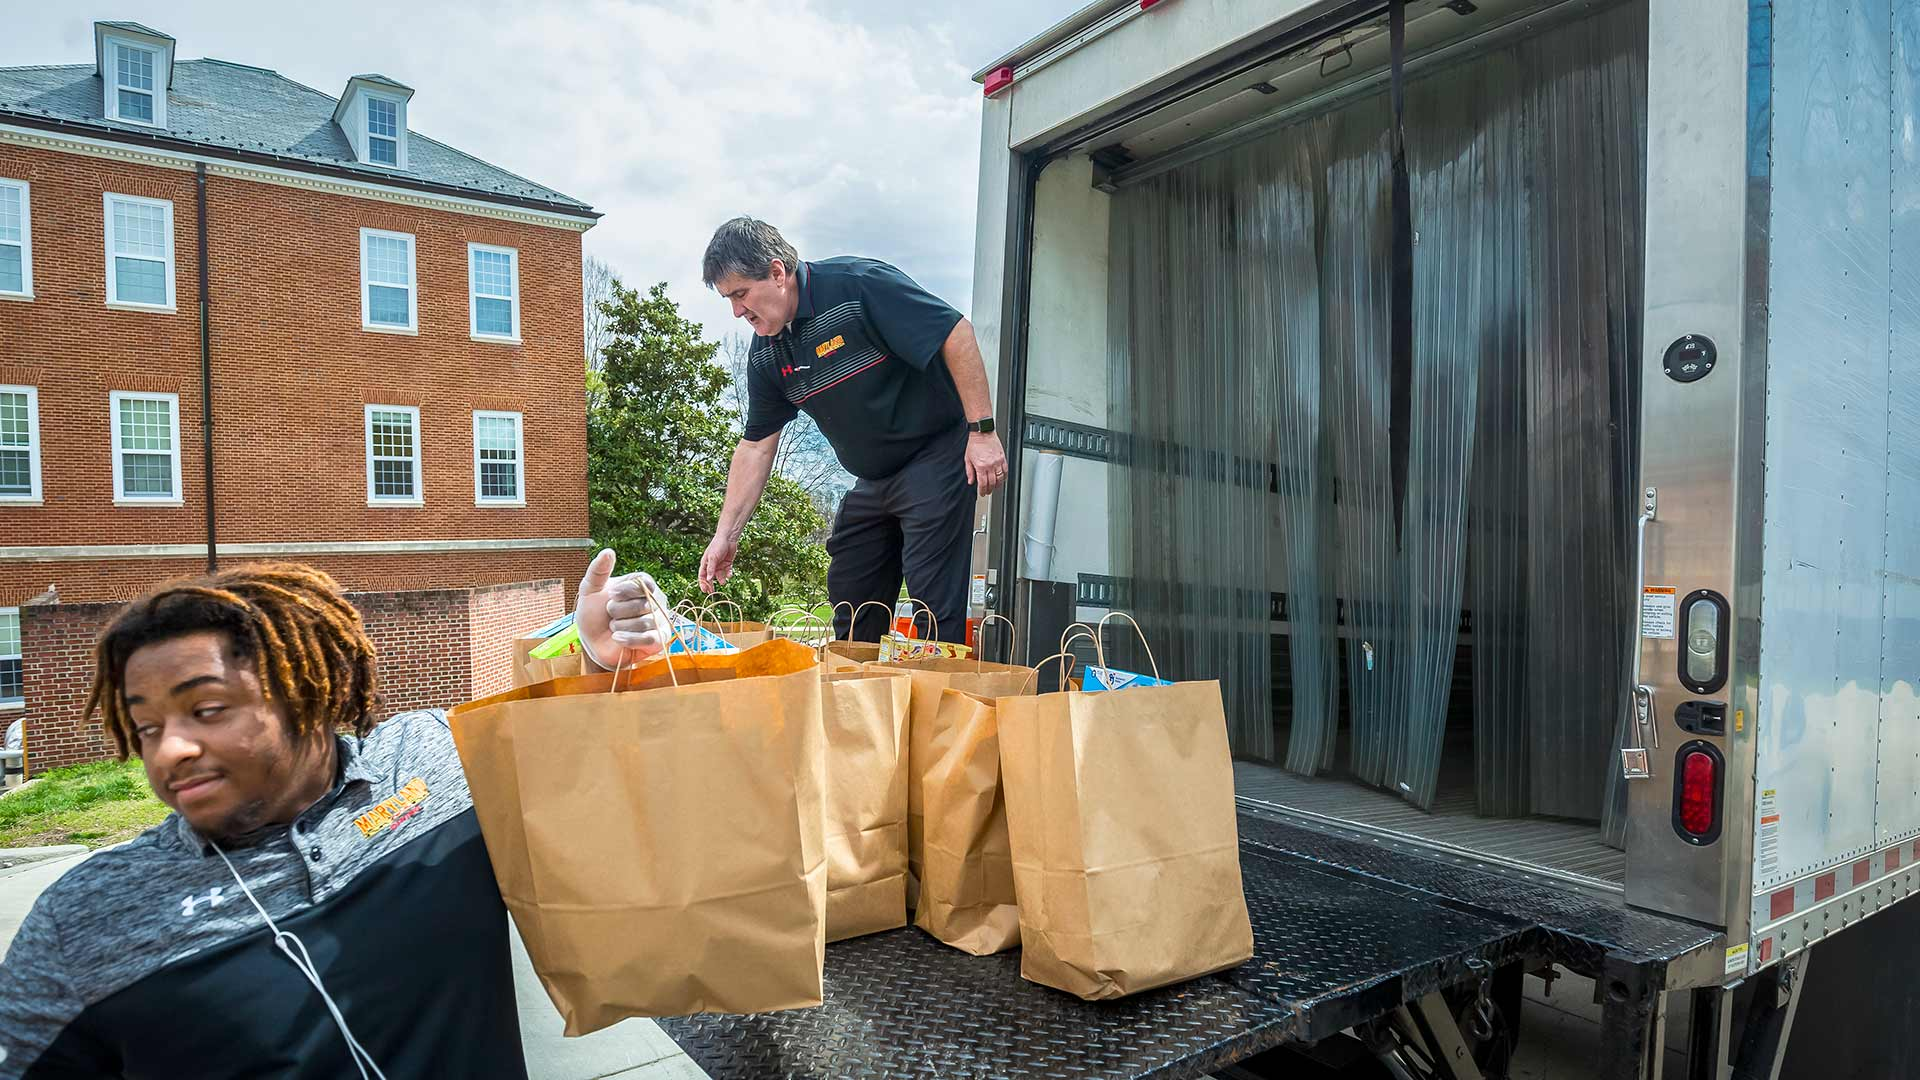 Dining Services employees Michael Norman (left) and Larry Tumlin unload preassembled bags of food at the Campus Pantry in March 2020, when the facility's clientele tripled in the wake of the pandemic and widespread shutdowns. A new contribution of more than $400,000 from the Student Government Association includes about $300,000 to support the Campus Pantry. (Photo by Stephanie S. Cordle)